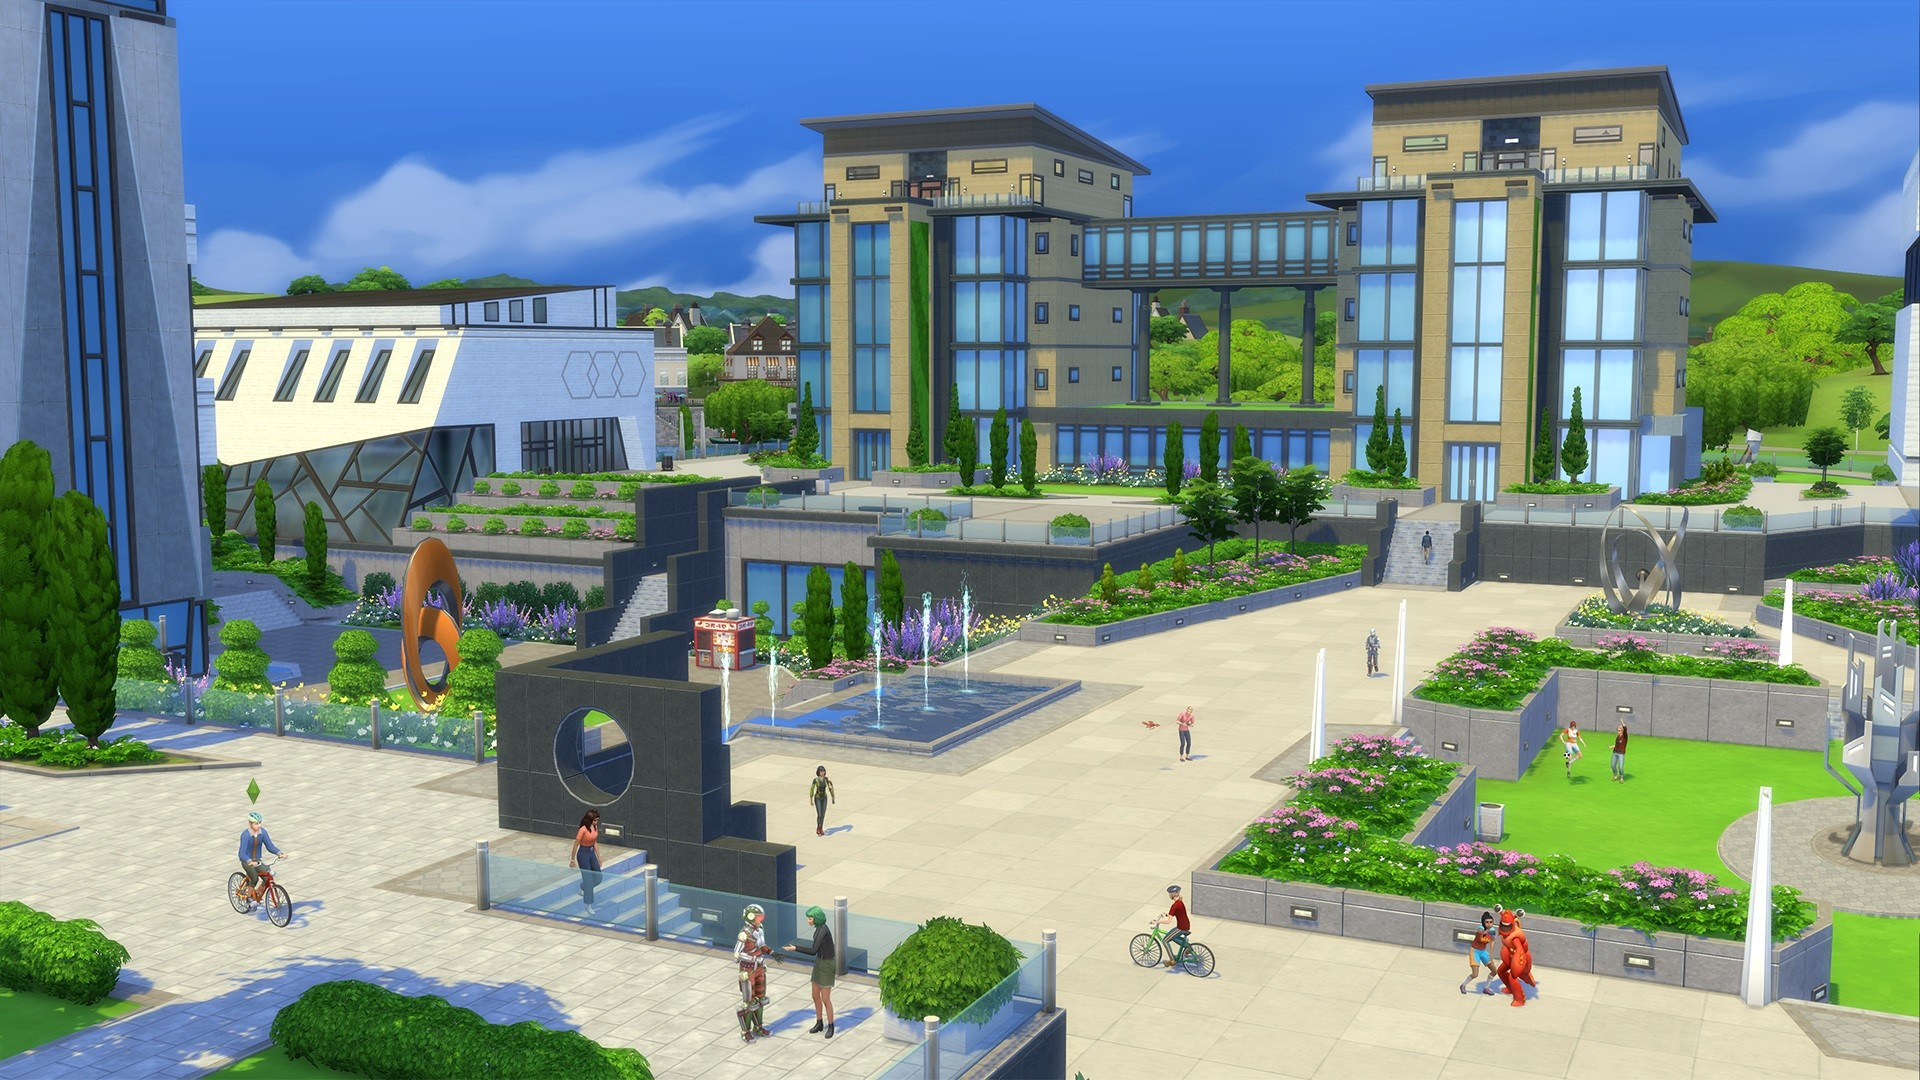 https://data2.origin.com/asset/content/dam/originx/web/app/games/the-sims/the-sims-4/expansion-packs/EP8-Discover-University/Screenshots/TS4_EP08_OFFICIAL_SCREENS_01_004_1080.jpg/26f36c2d-35c2-4dbf-a21f-ae73d21a02ea/original.jpg